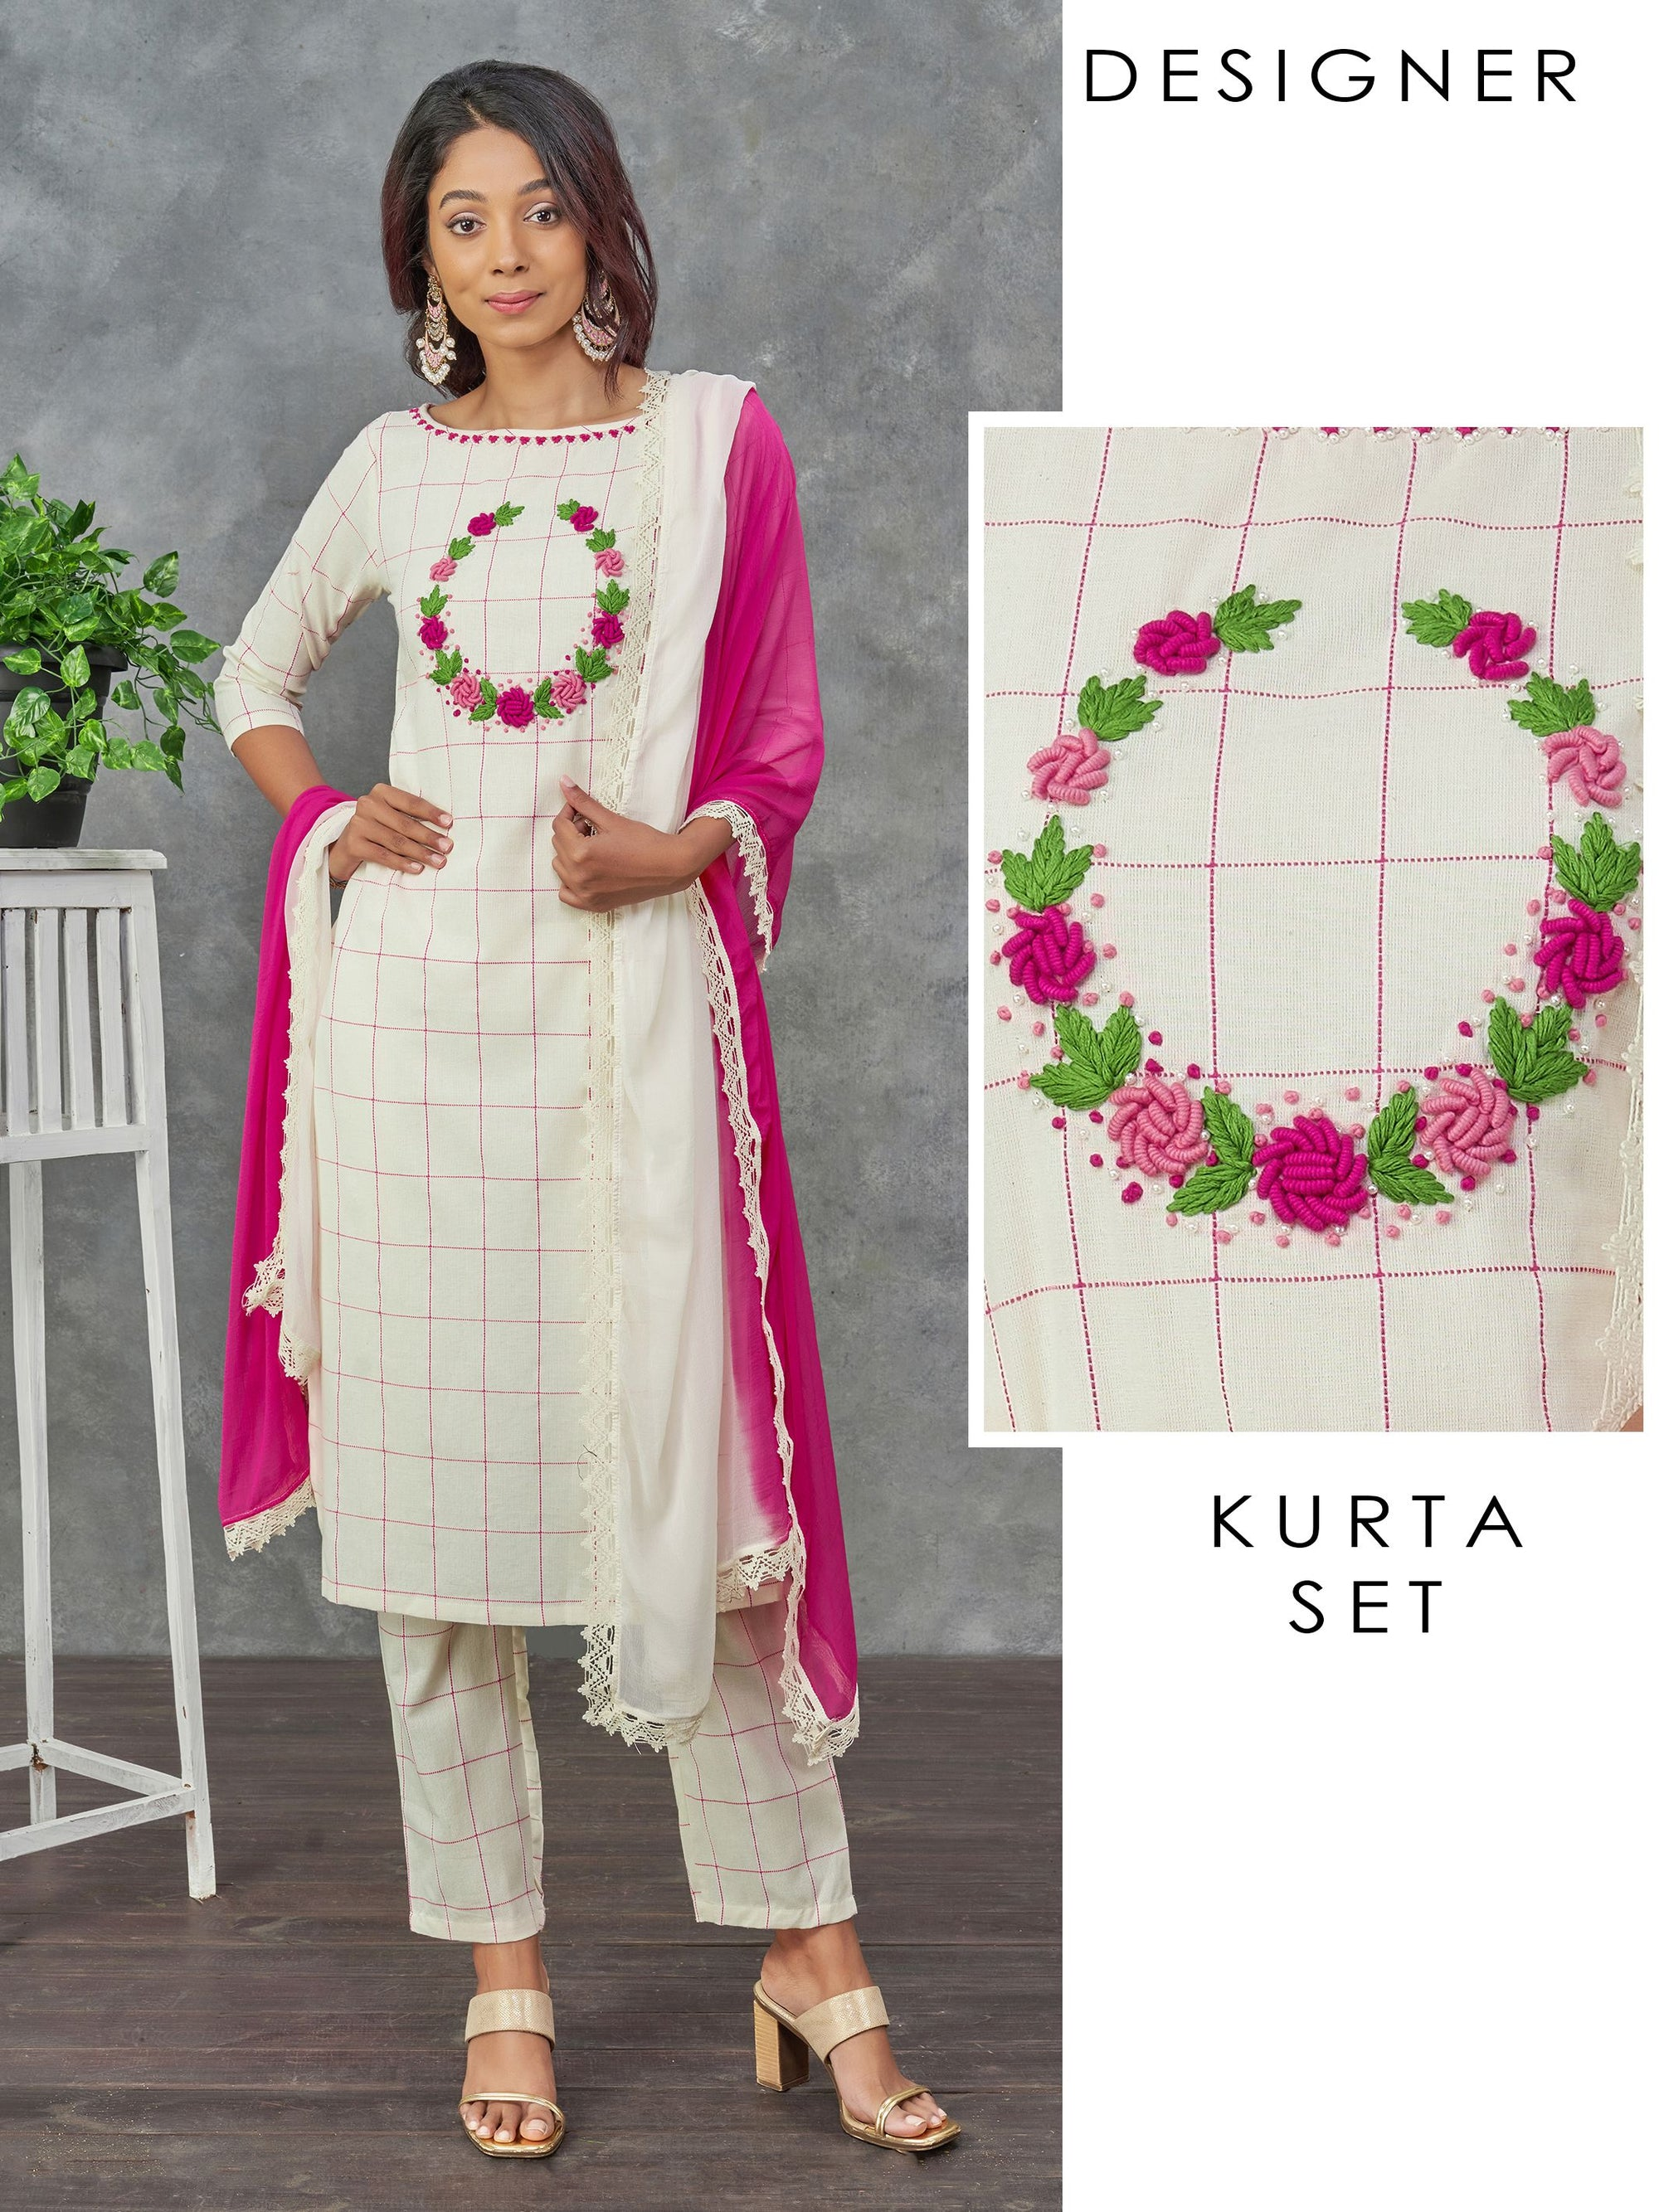 Bullion Knot Wreath Embroidered Kurti, Pant & Dupatta Set – Off-White